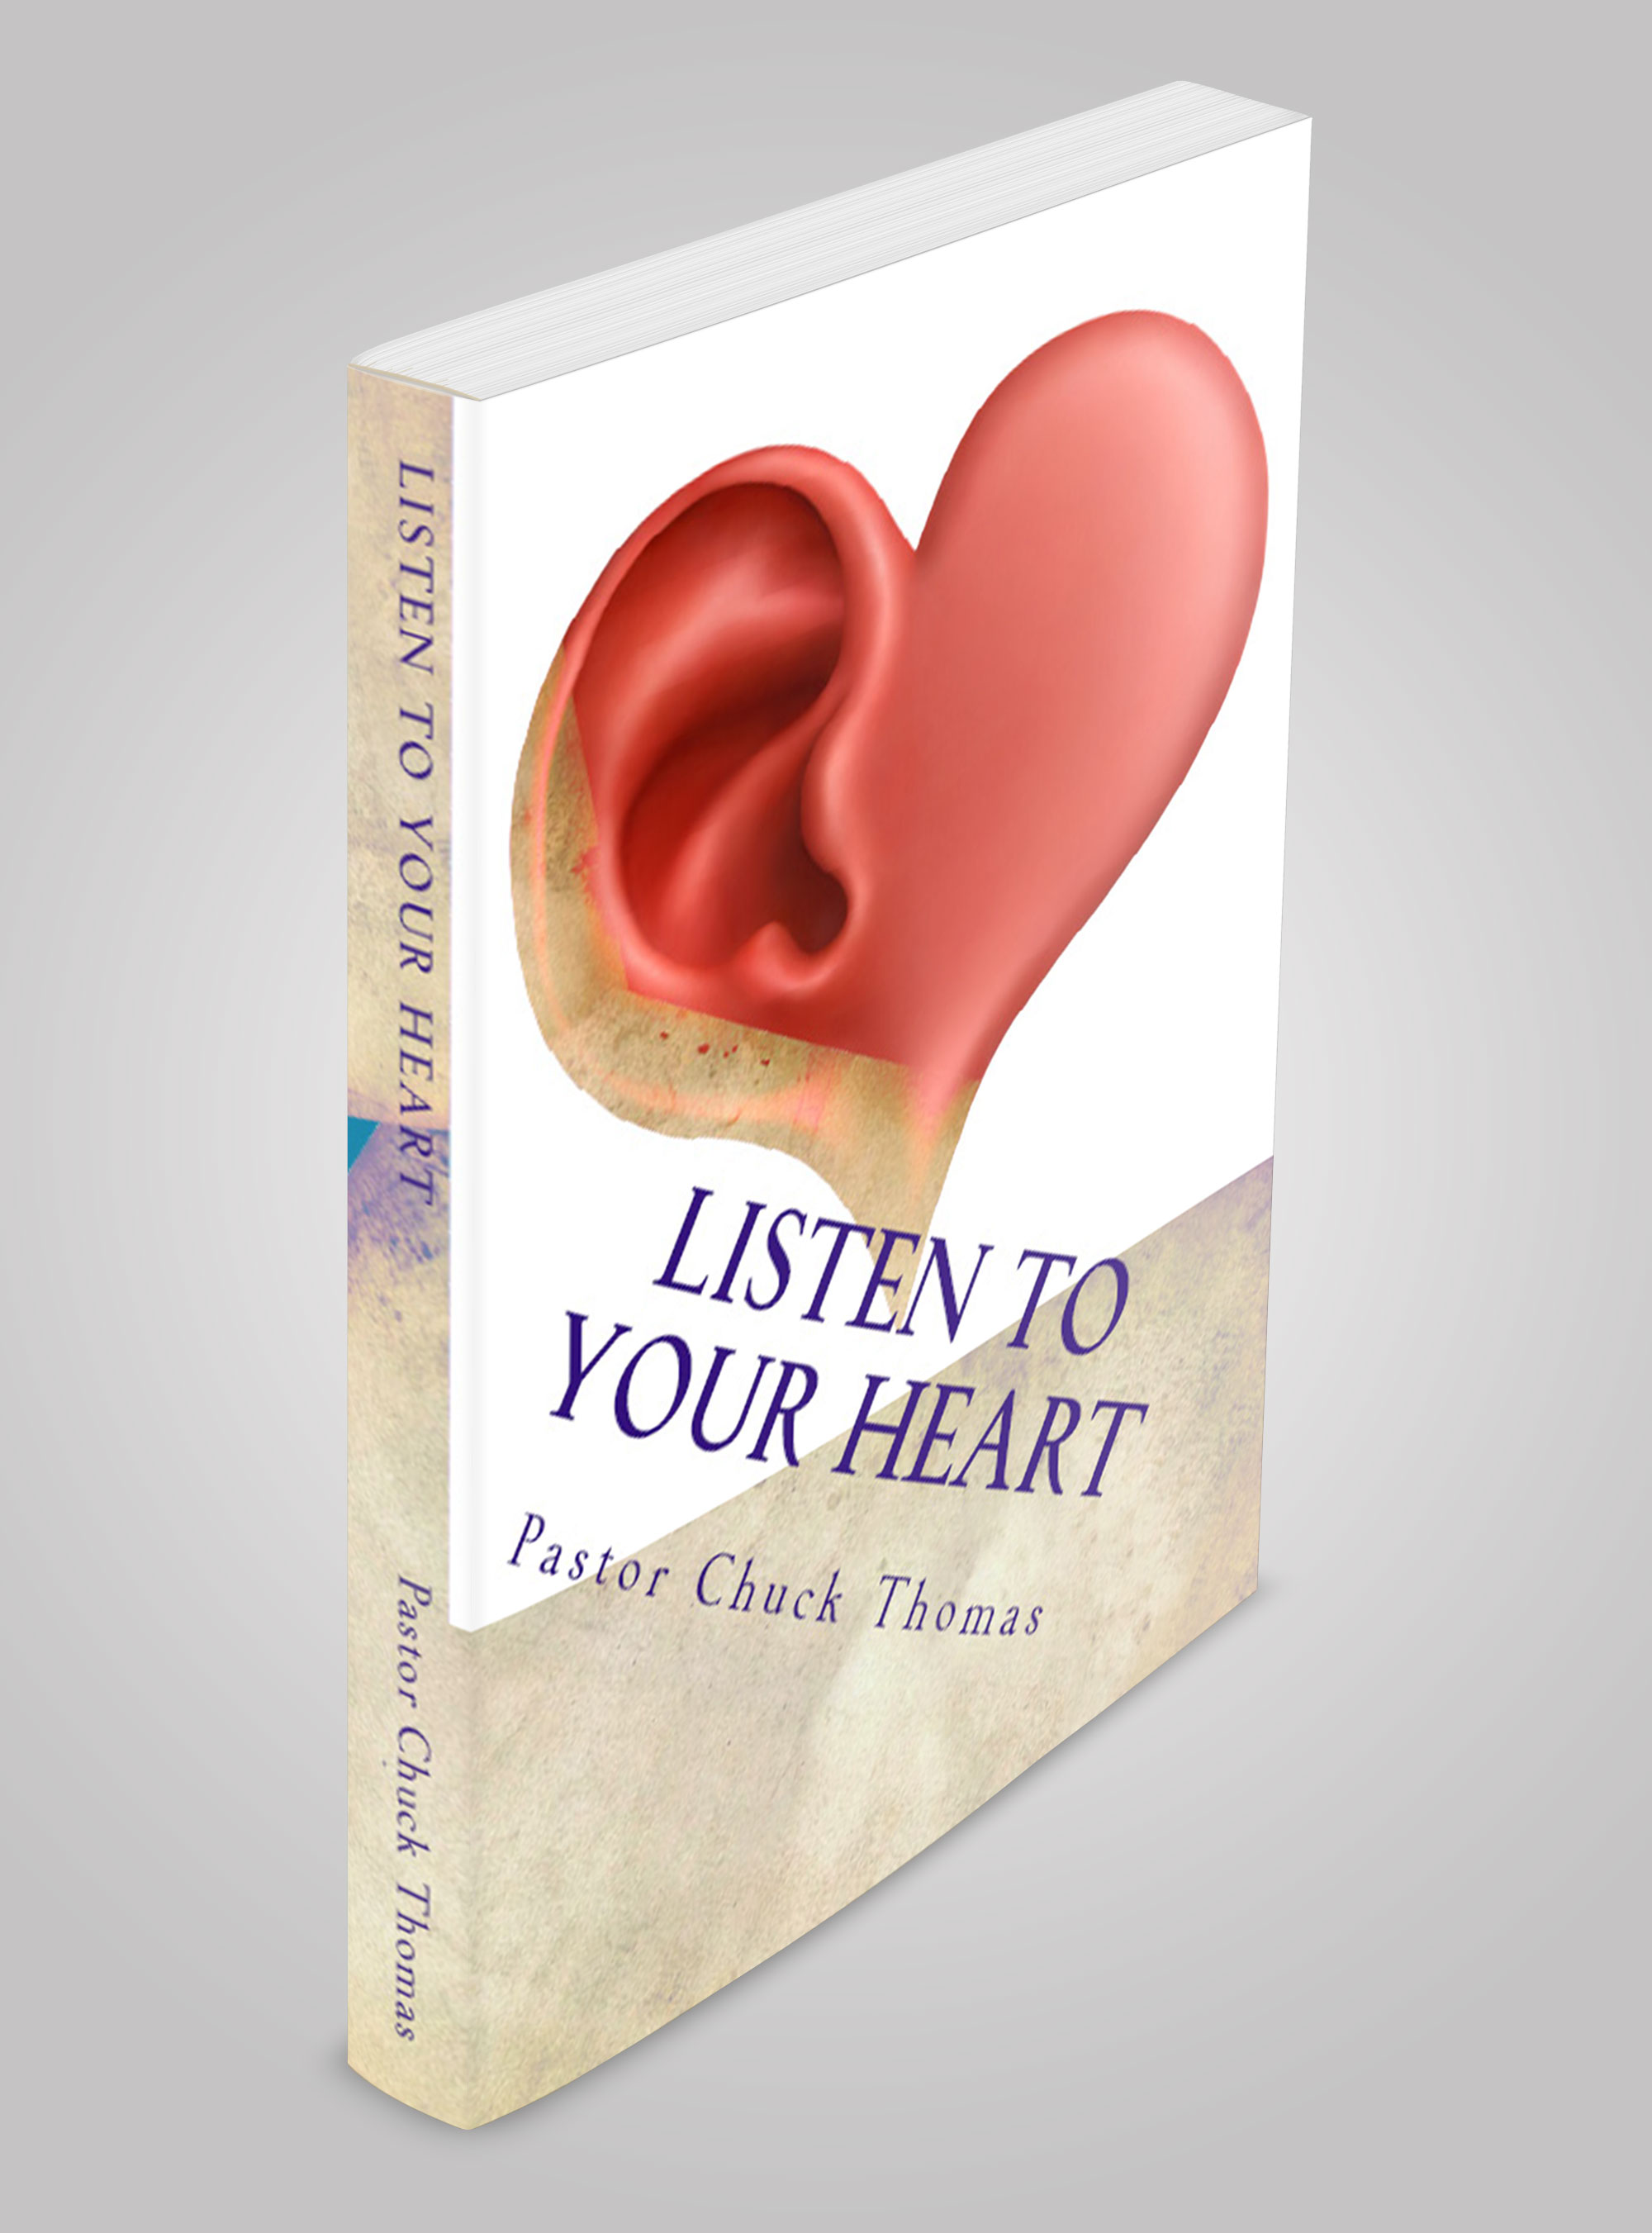 3D.listento your heart1